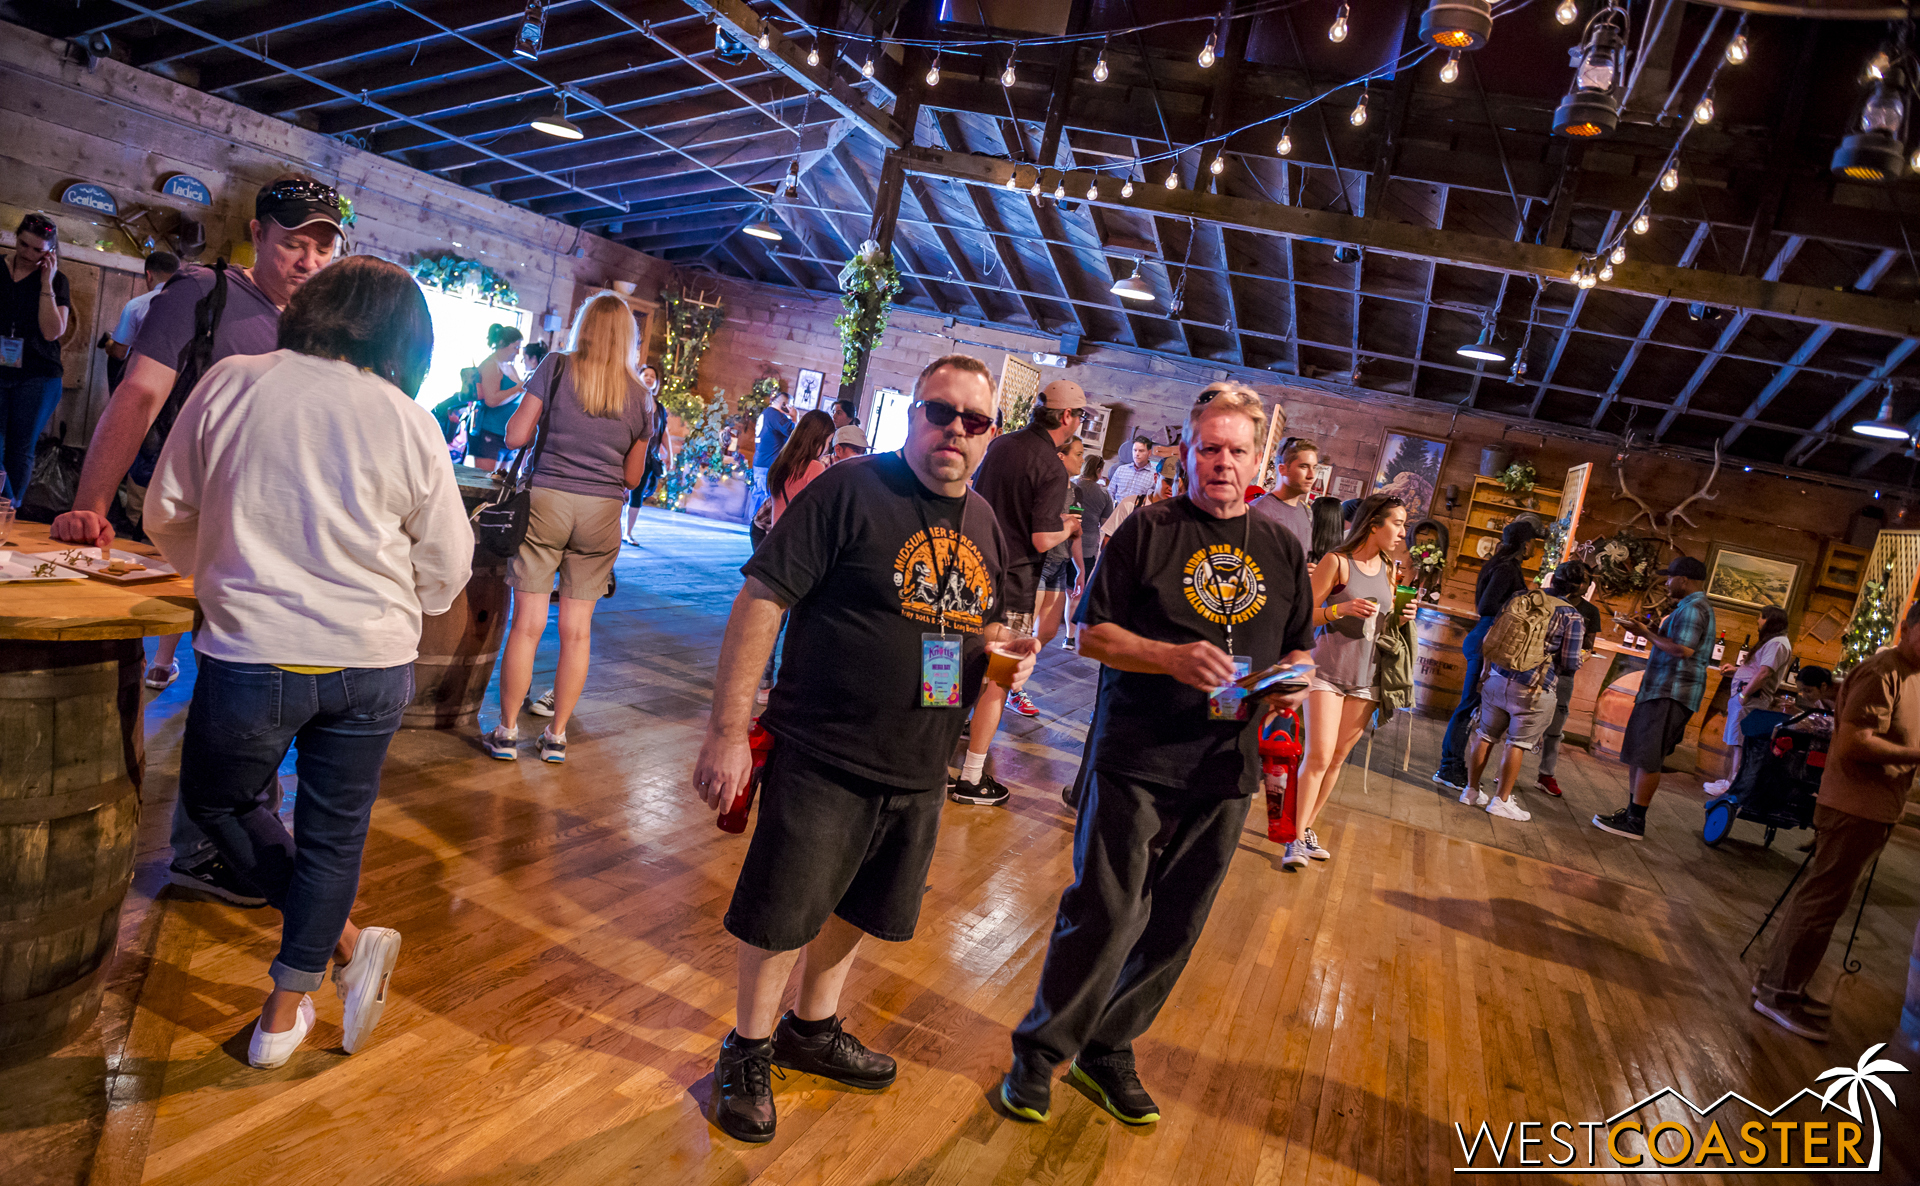 Among many others, the Midsummer Scream crew was on hand to check out all the wine goodies.